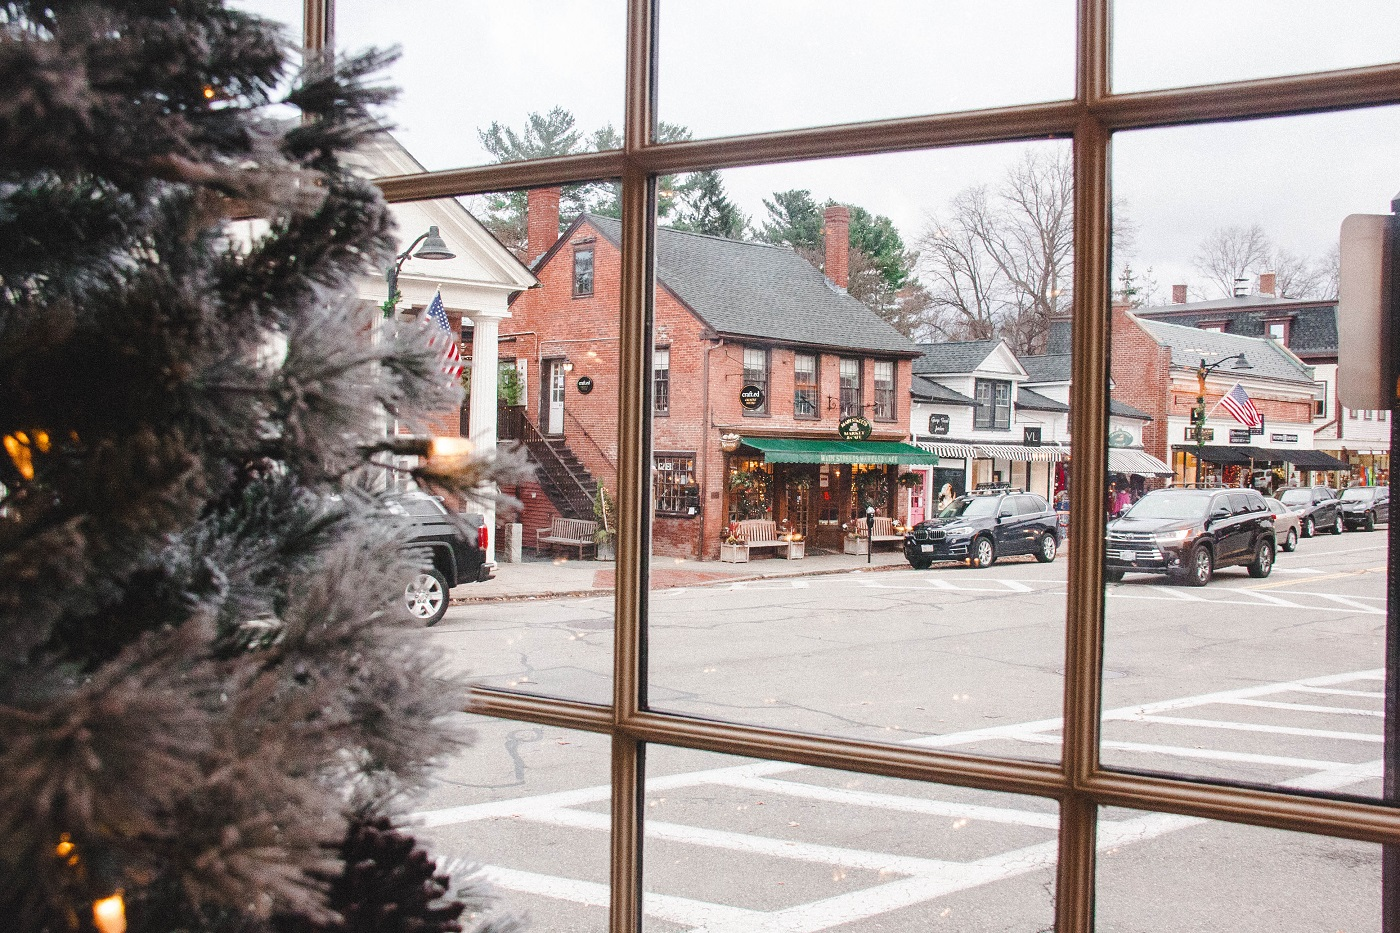 Happy Holidays from Concord, MA